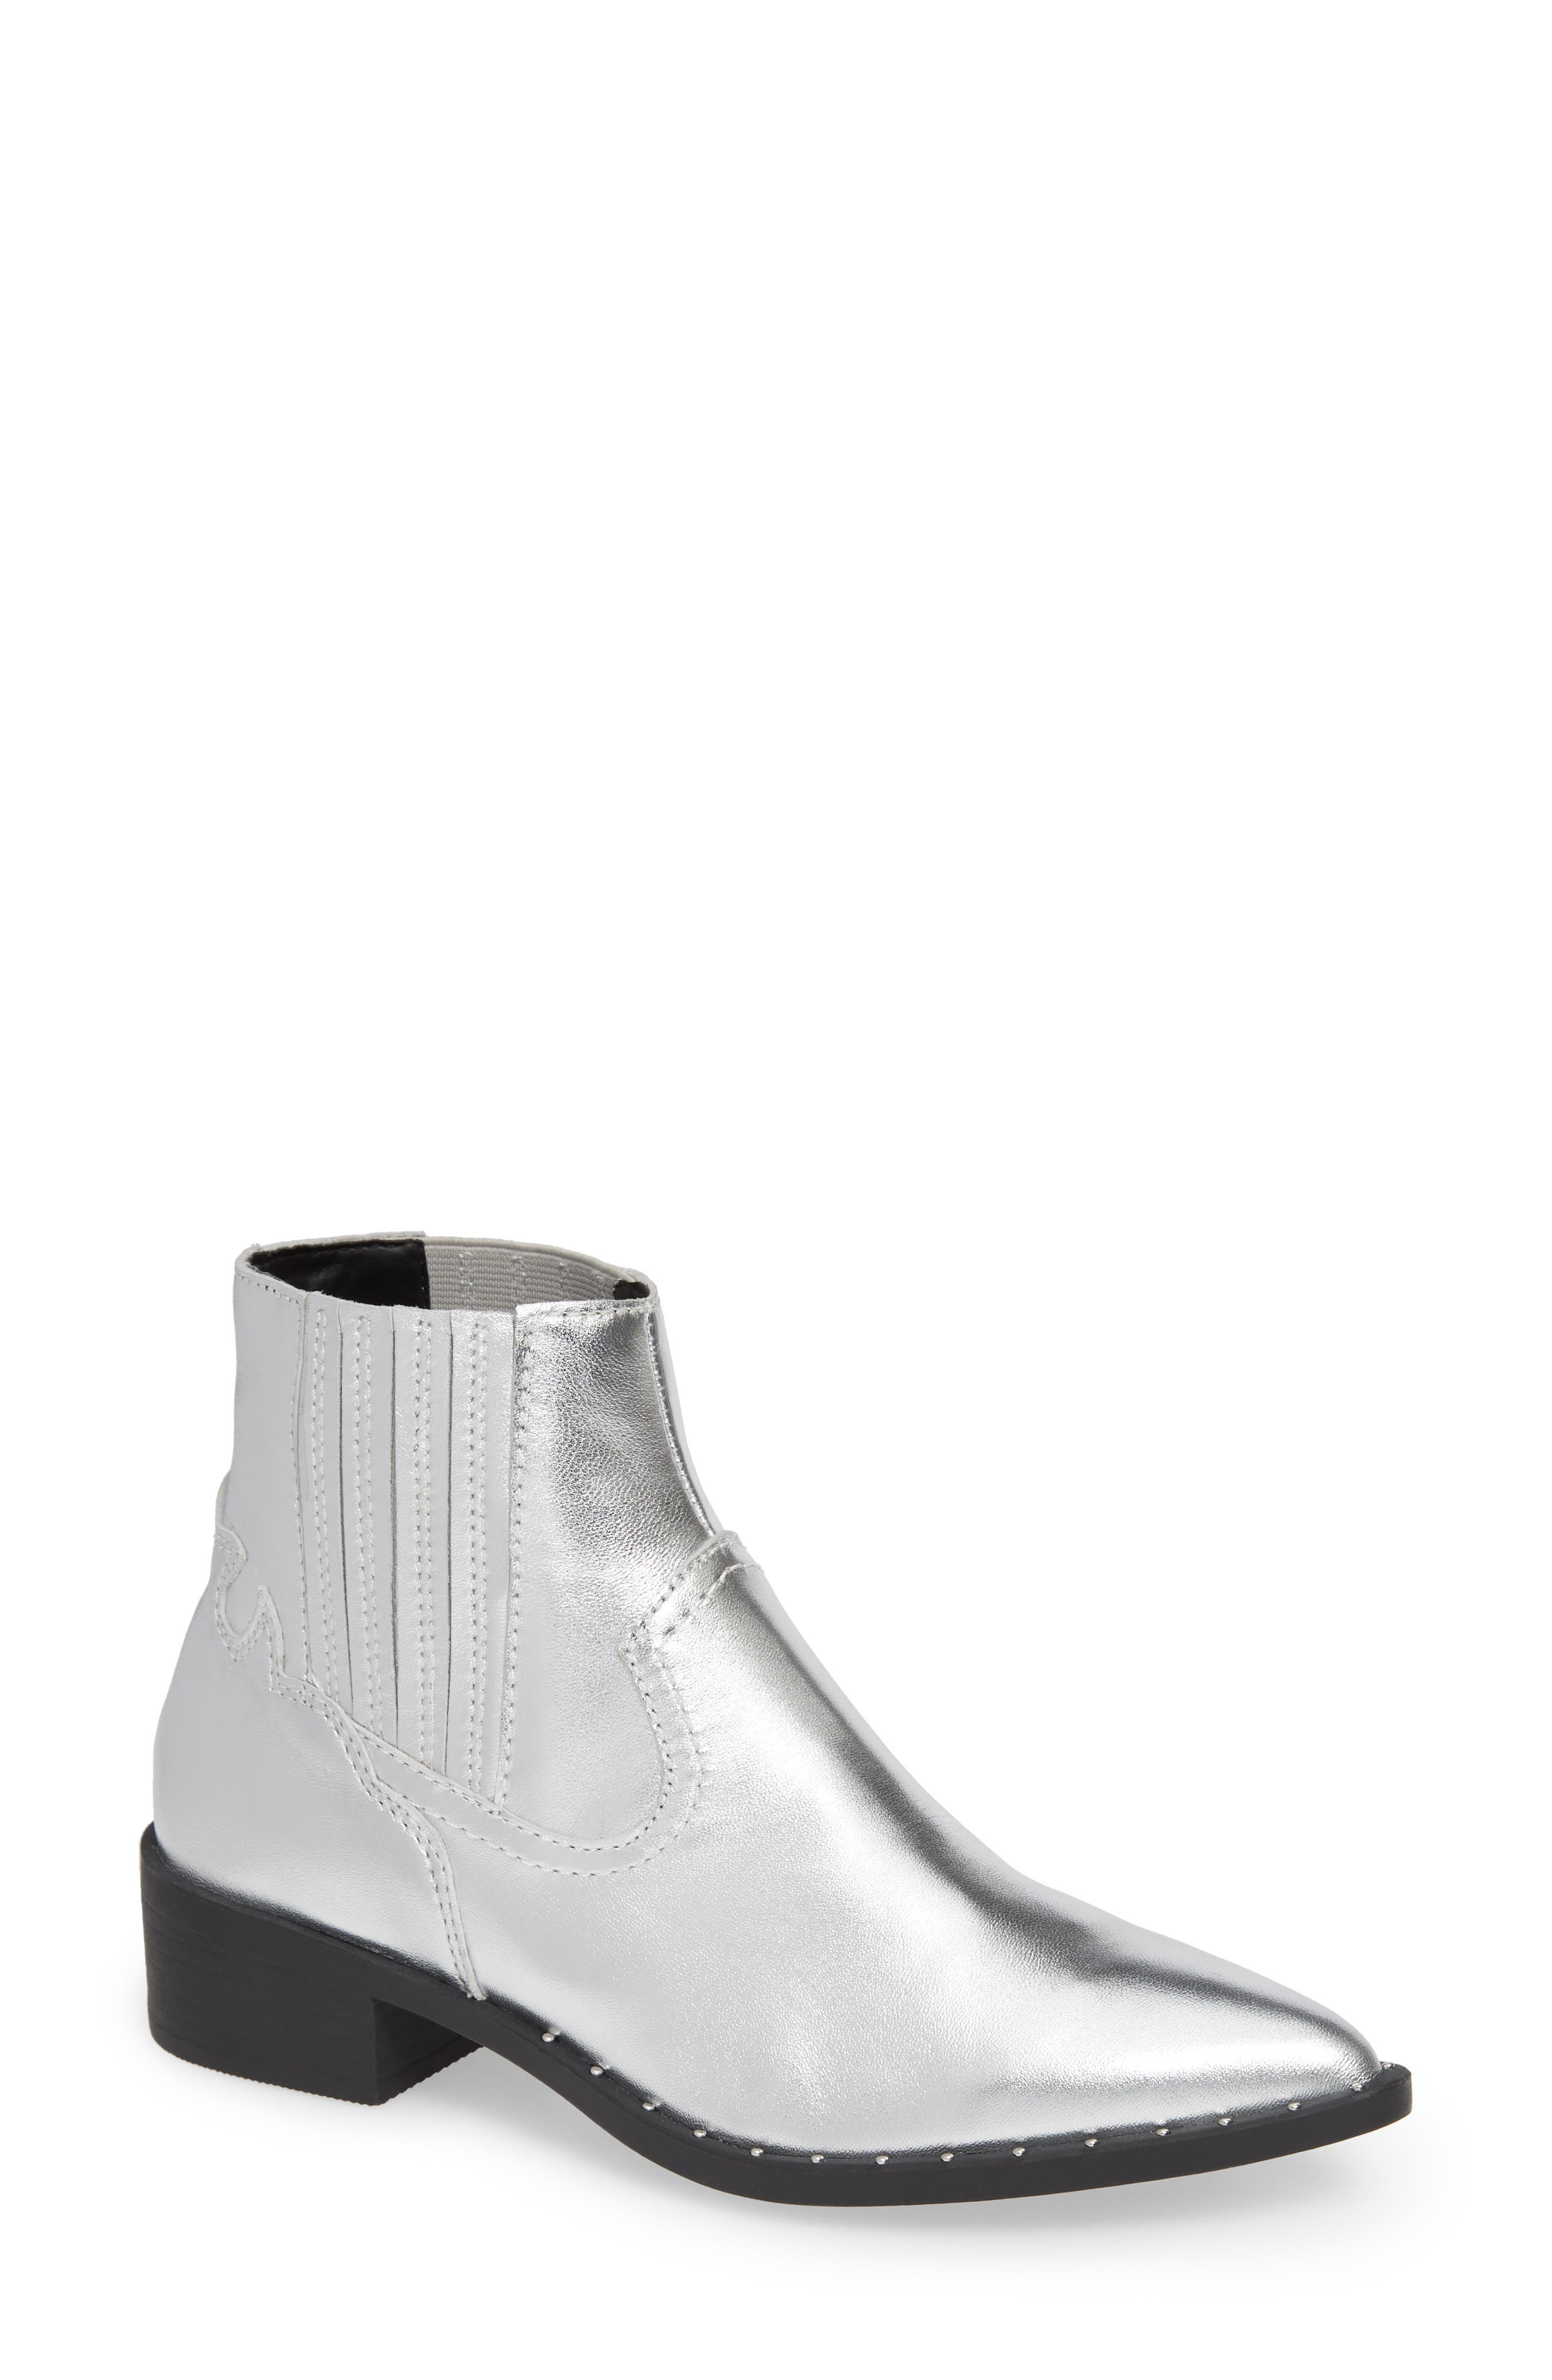 Juke Bootie,                             Main thumbnail 1, color,                             SILVER LEATHER